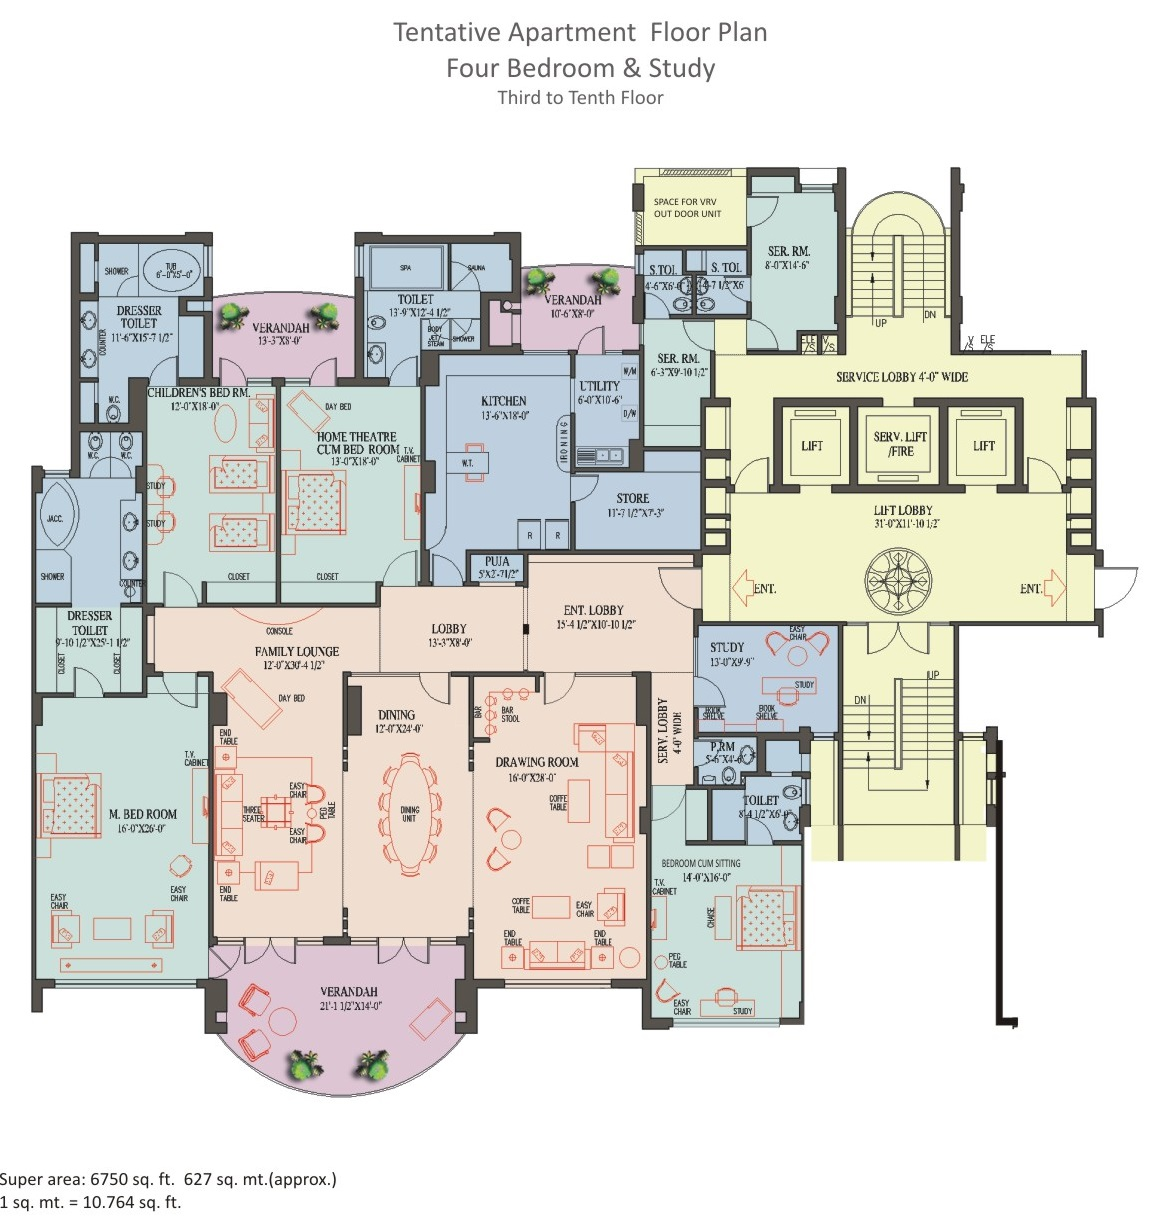 4 BHK Apartment - 3rd to 10th Floor